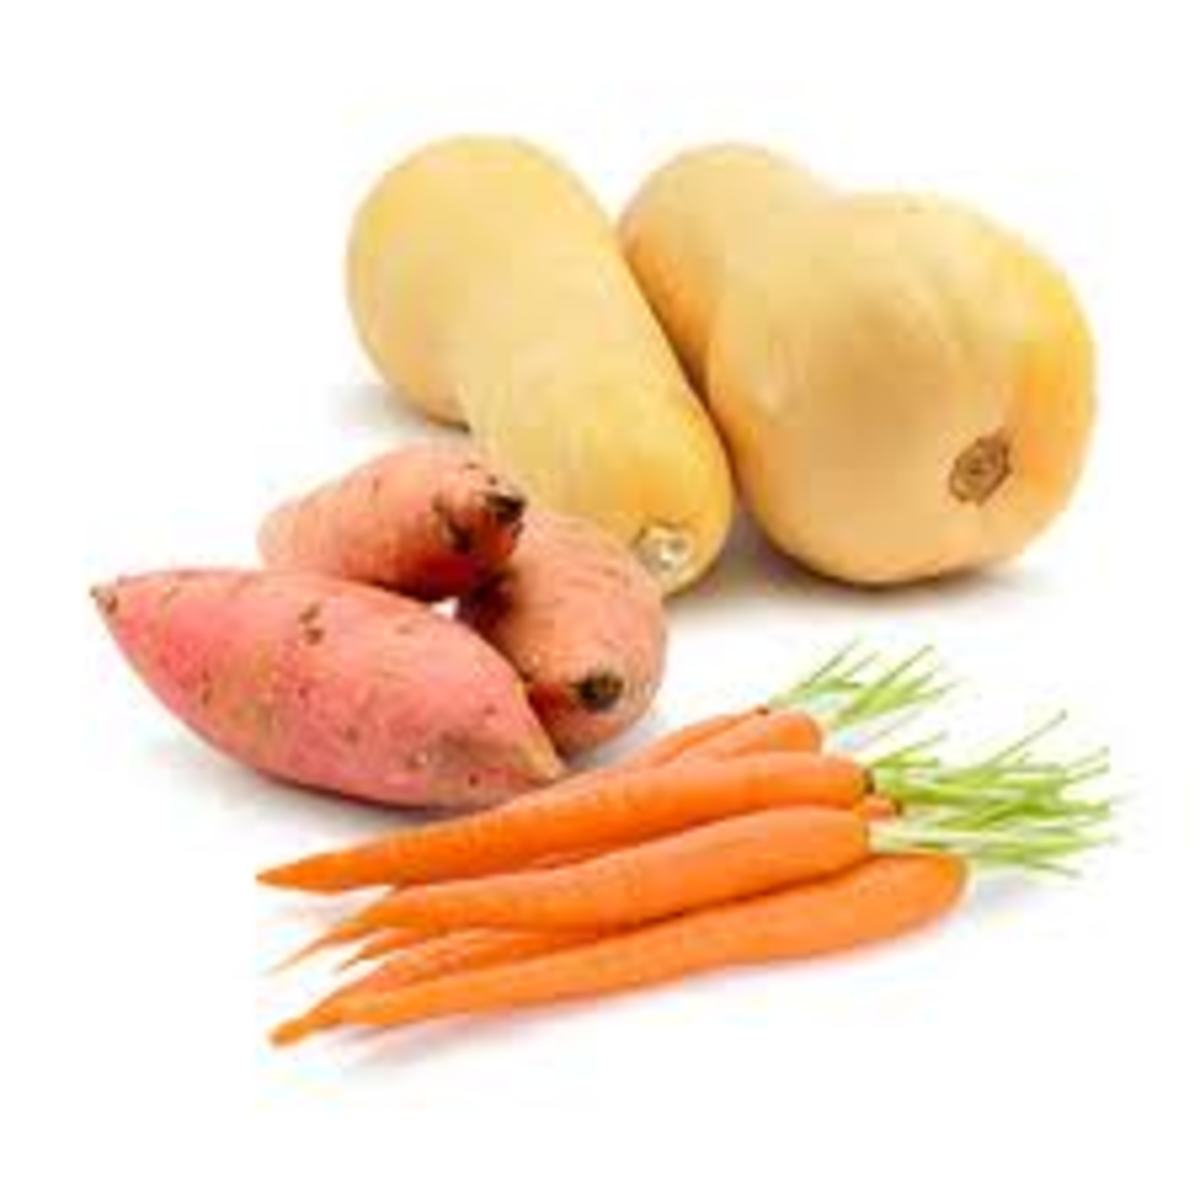 These are some of the common foods that have beta-carotene